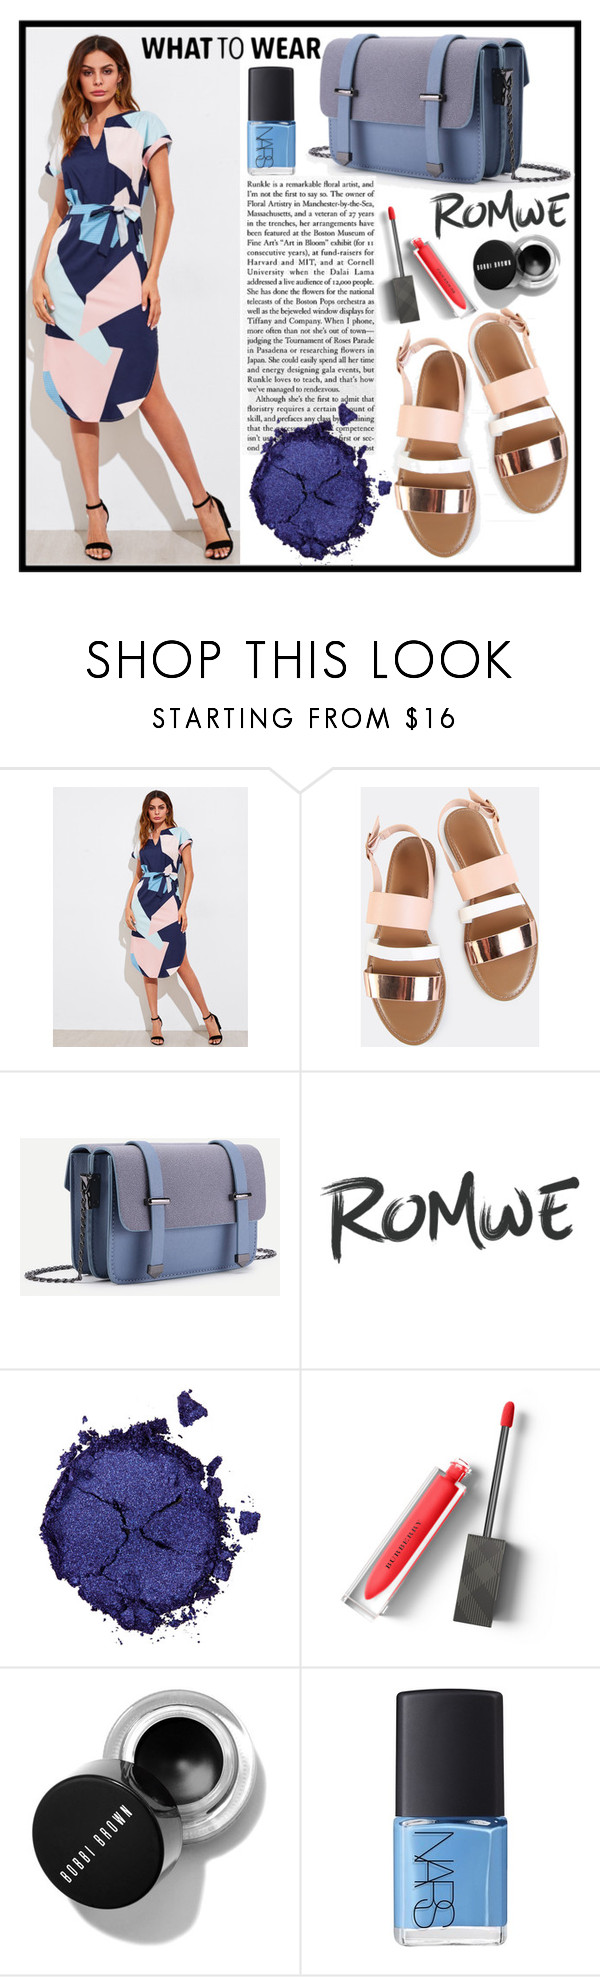 """""""Romwe 8./3"""" by b-necka ❤ liked on Polyvore featuring Pat McGrath, Burberry, NARS Cosmetics and romwe"""